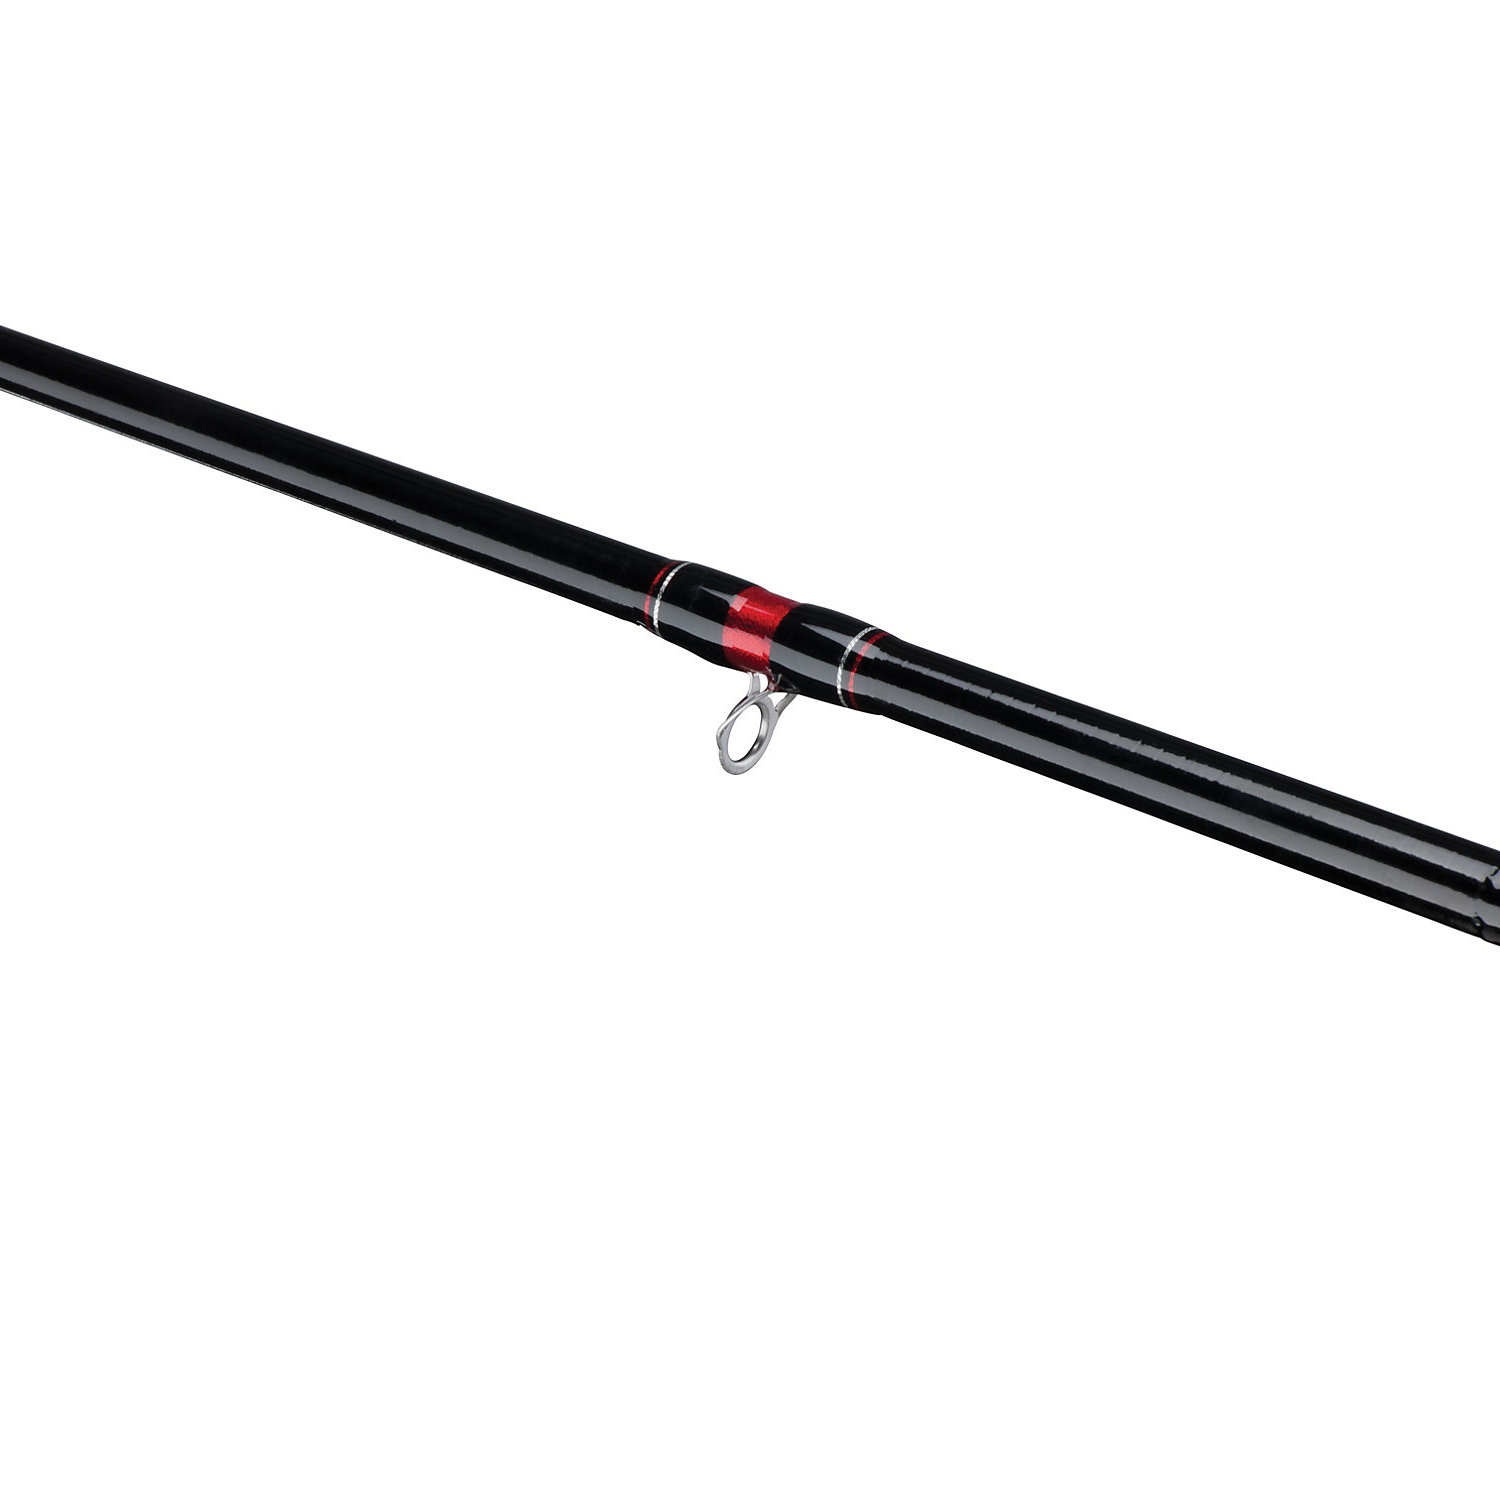 Ugly Stik Bigwater Fly Rod